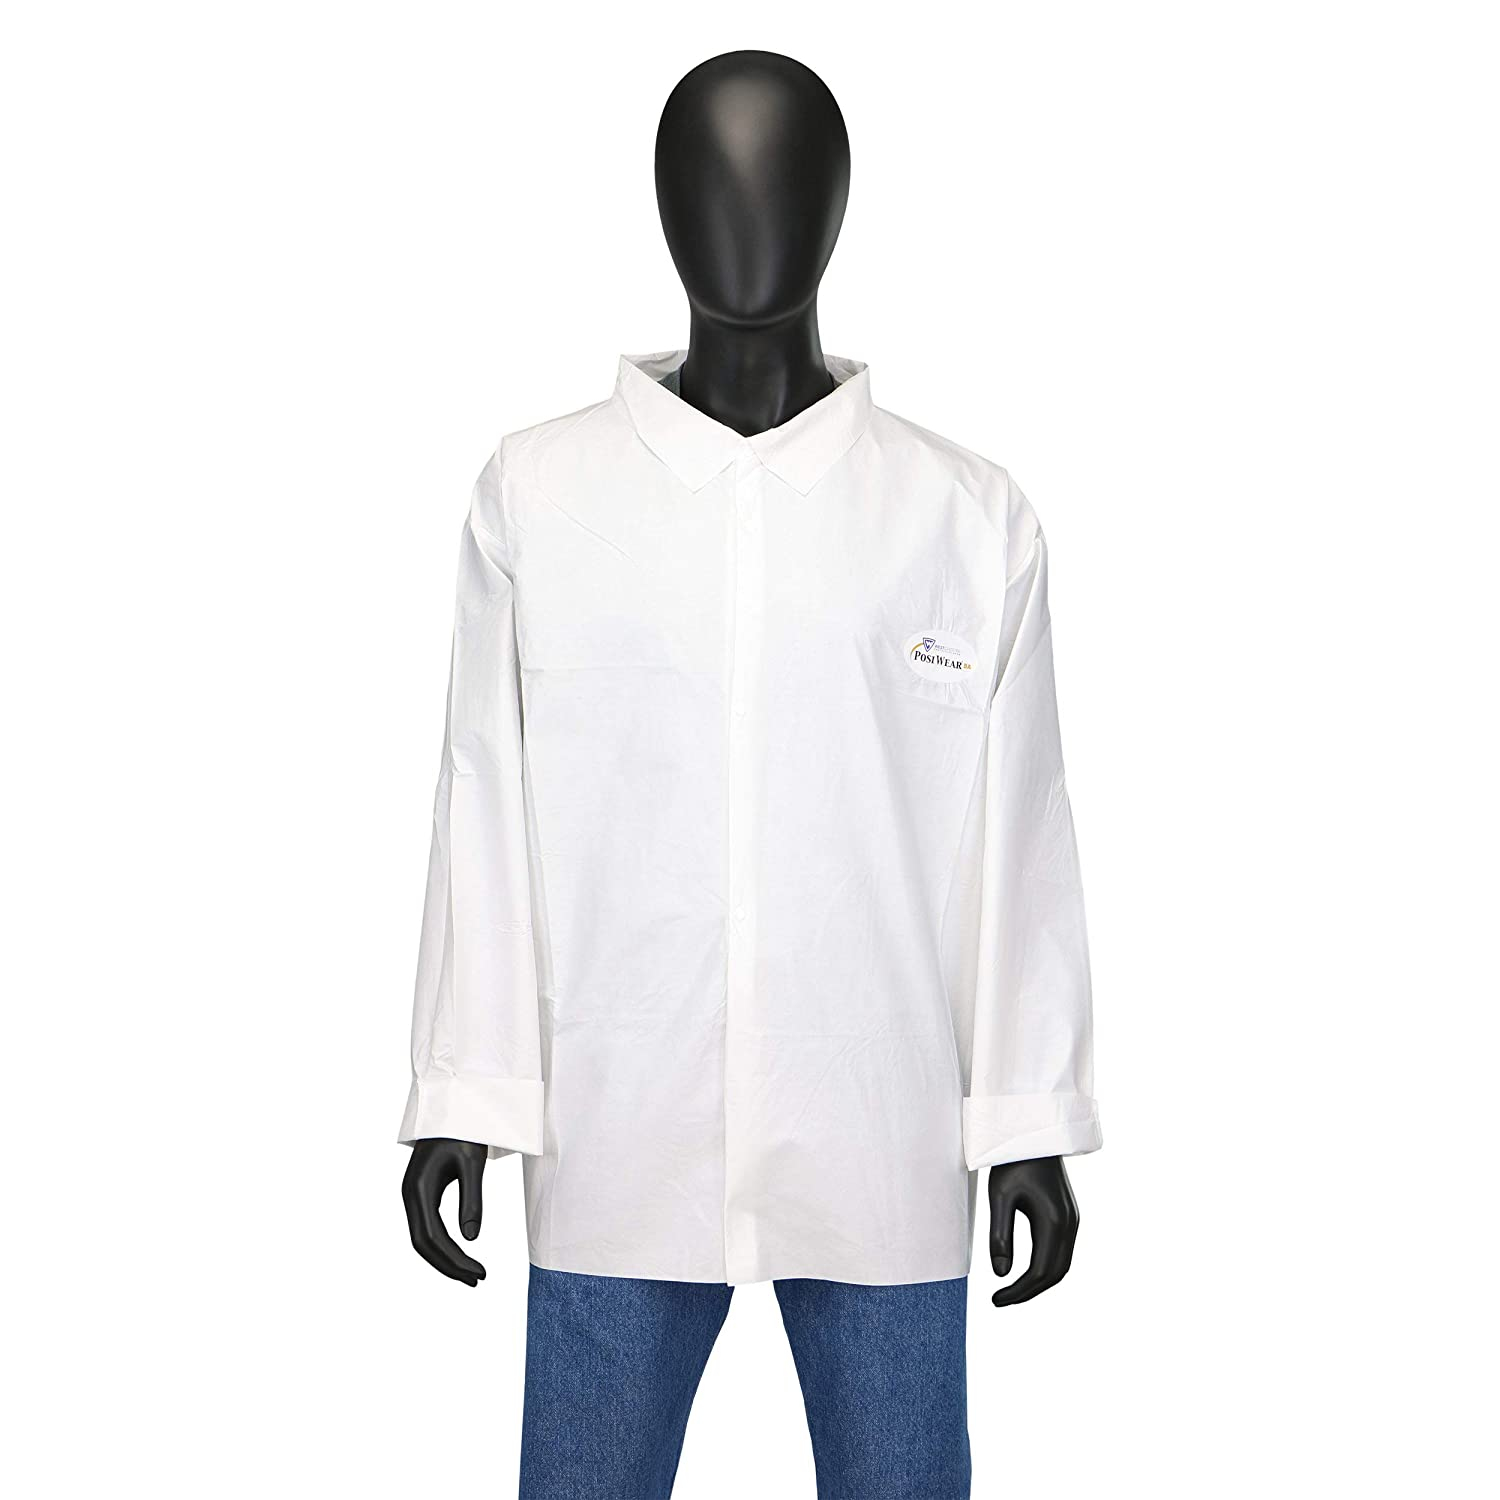 West Chester 3617 Postbag Microporous Shirt – XXX-Large White Work Wear Shirt with Snap Front Closure